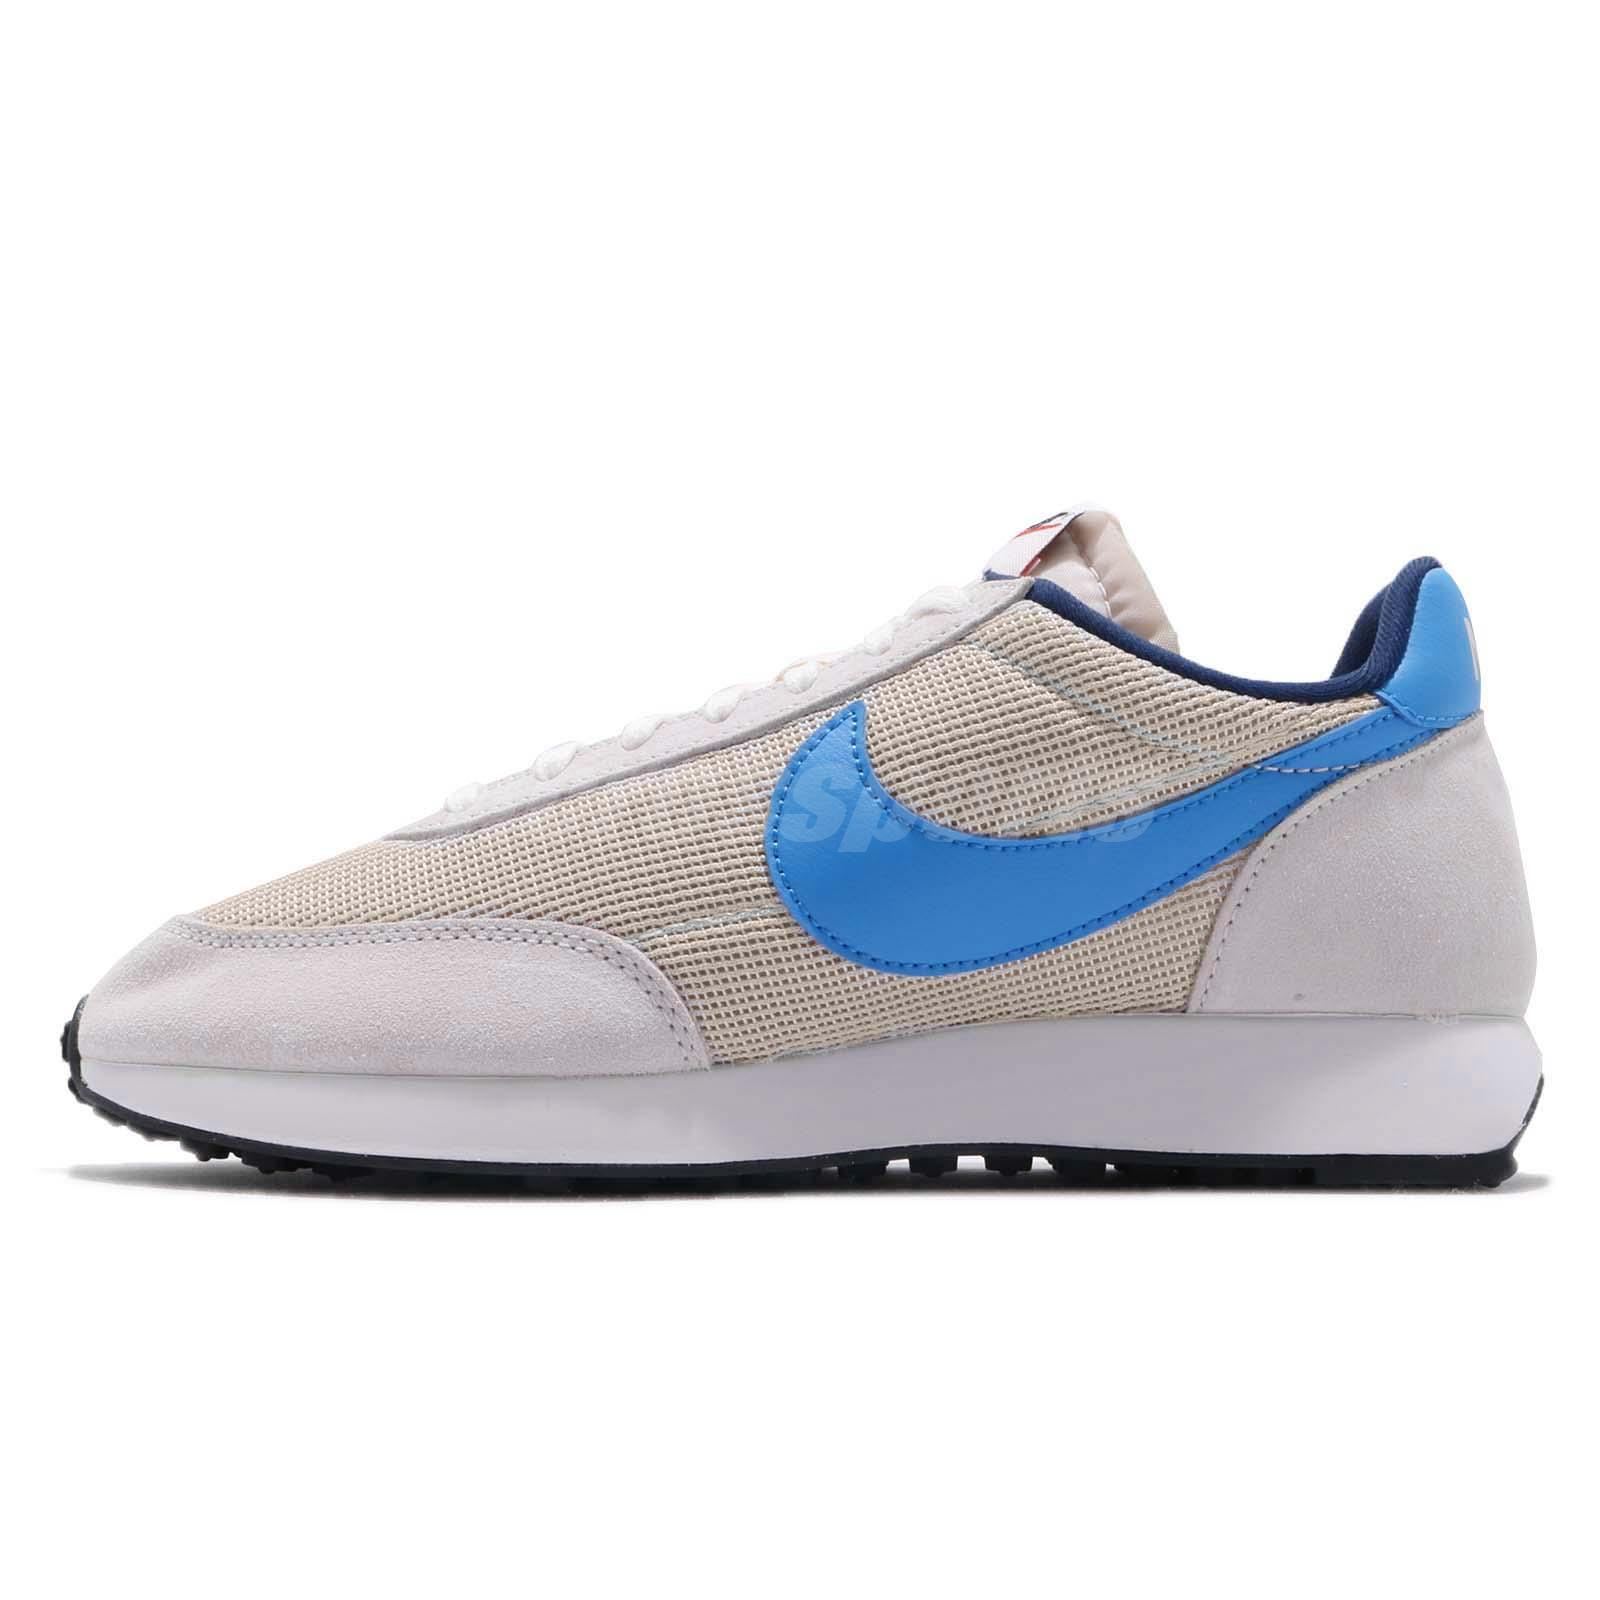 Nike Air Tailwind 79 OG Vast Grey Photo Blue Mens Retro Running Shoes BQ5878 -001 52c66a964